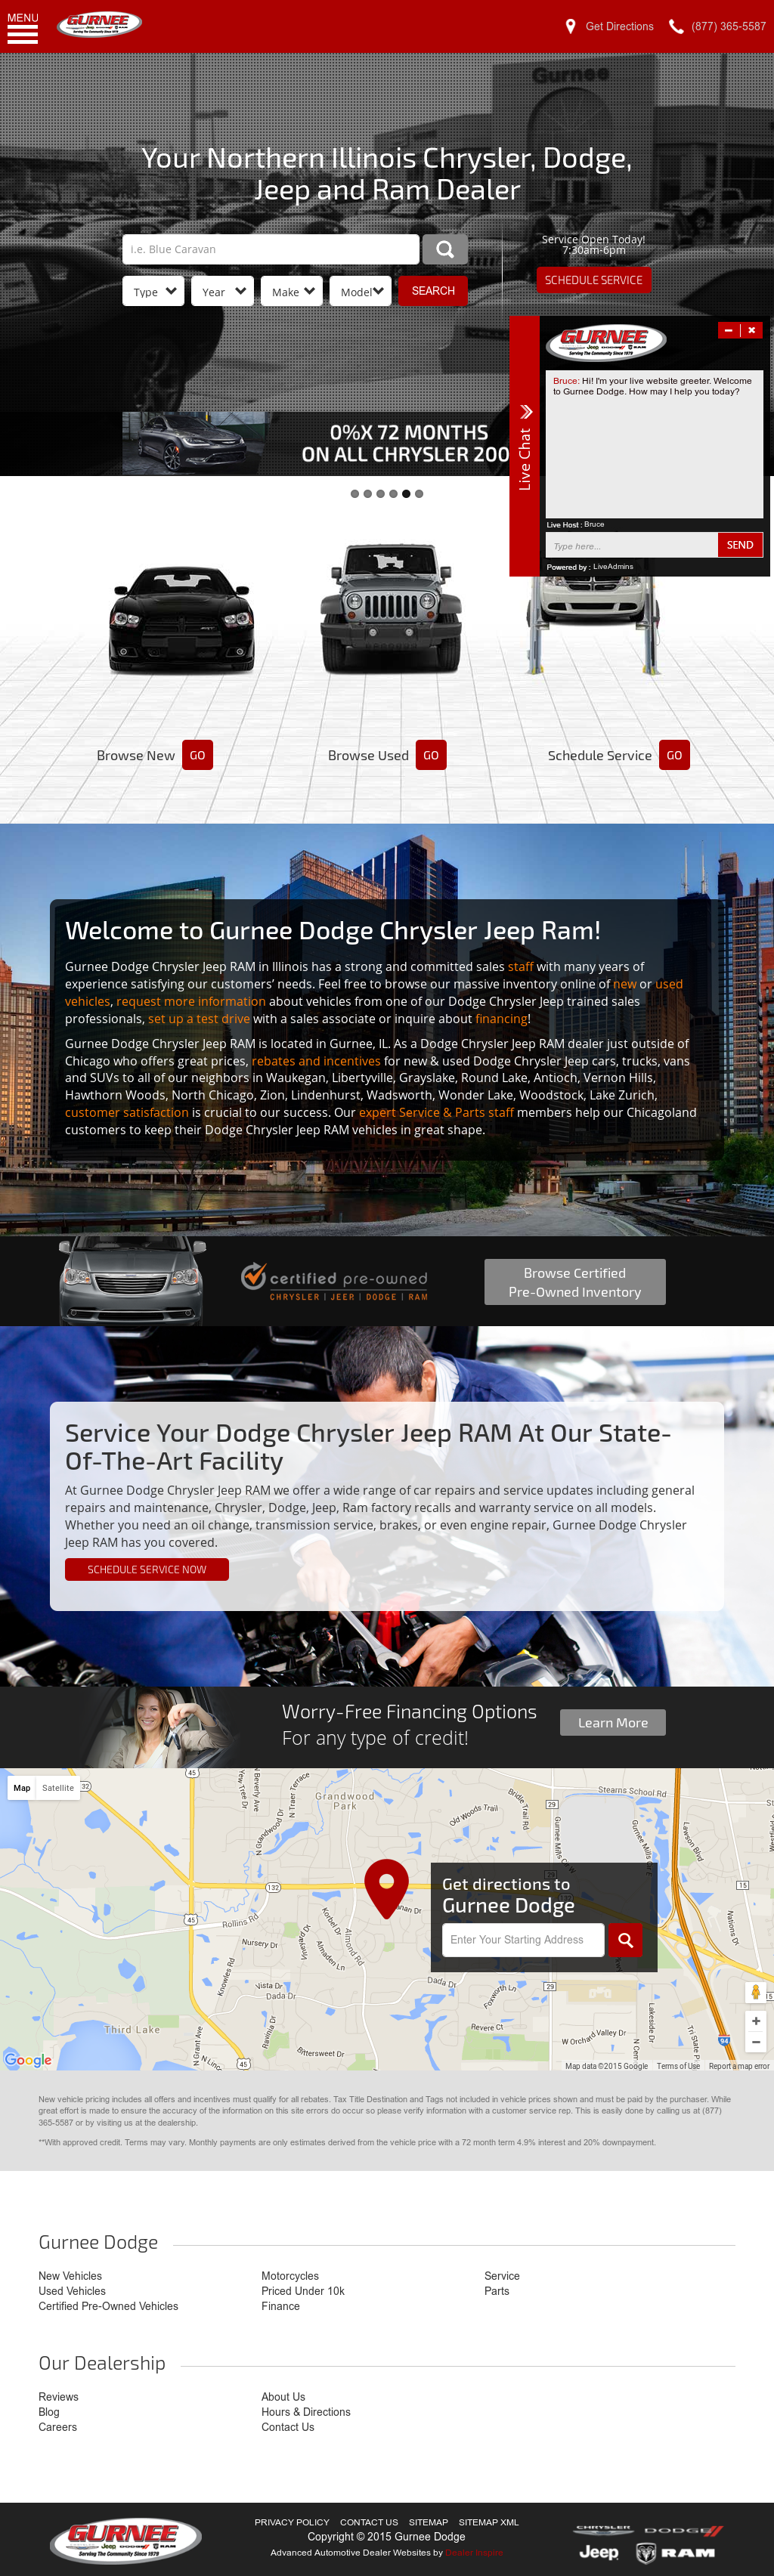 Gurnee Dodge Chrysler Jeep RAM Competitors, Revenue And Employees   Owler  Company Profile